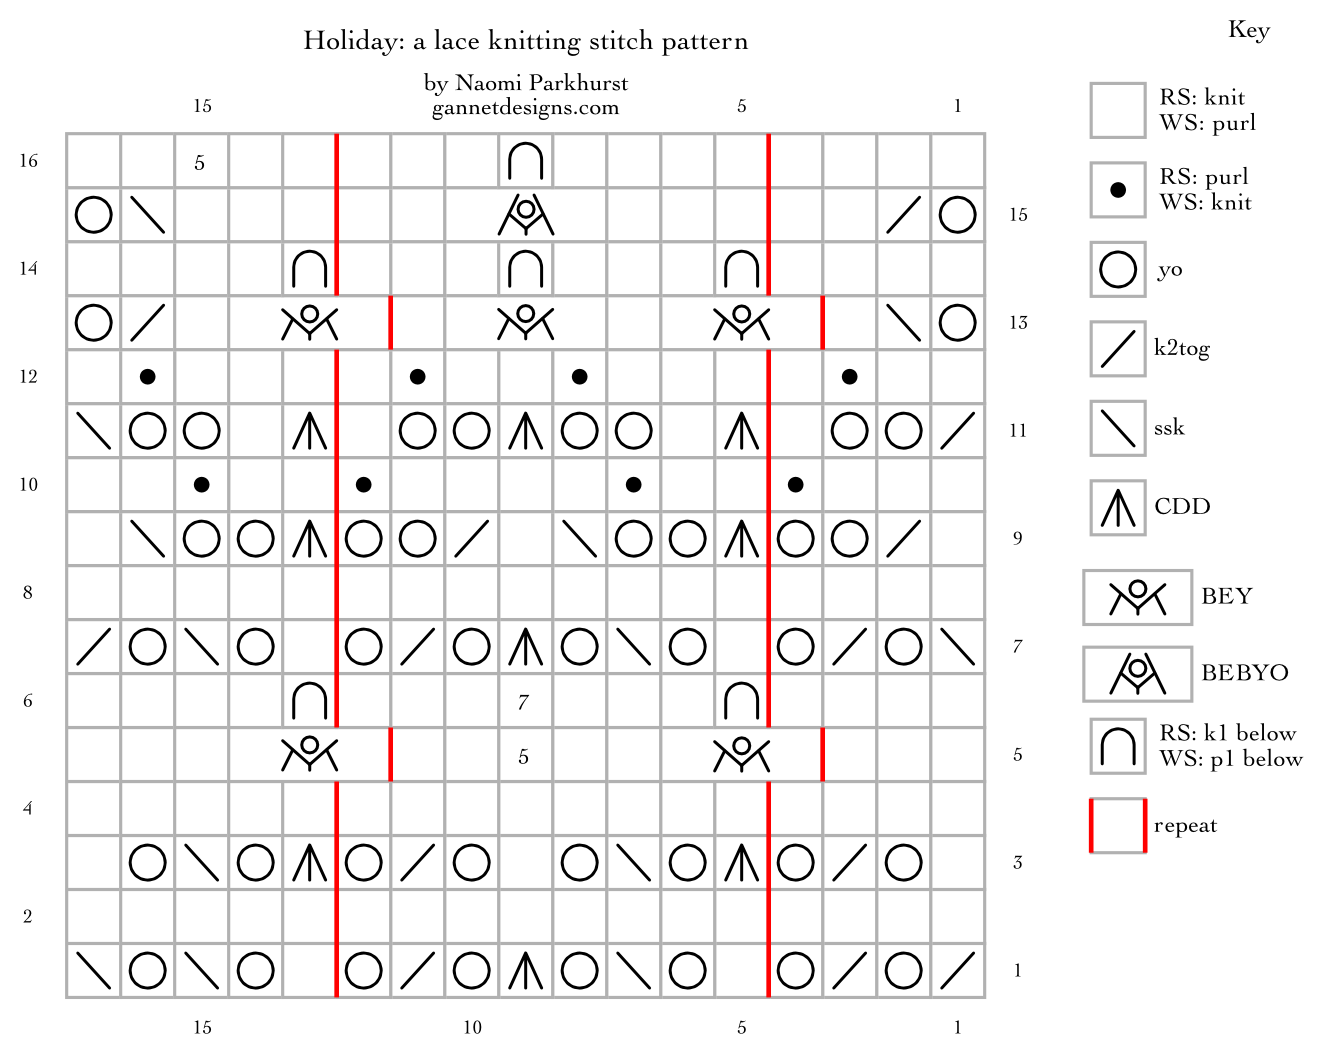 chart showing how to knit Holiday lace using special symbols. Written instructions also included in blog post.